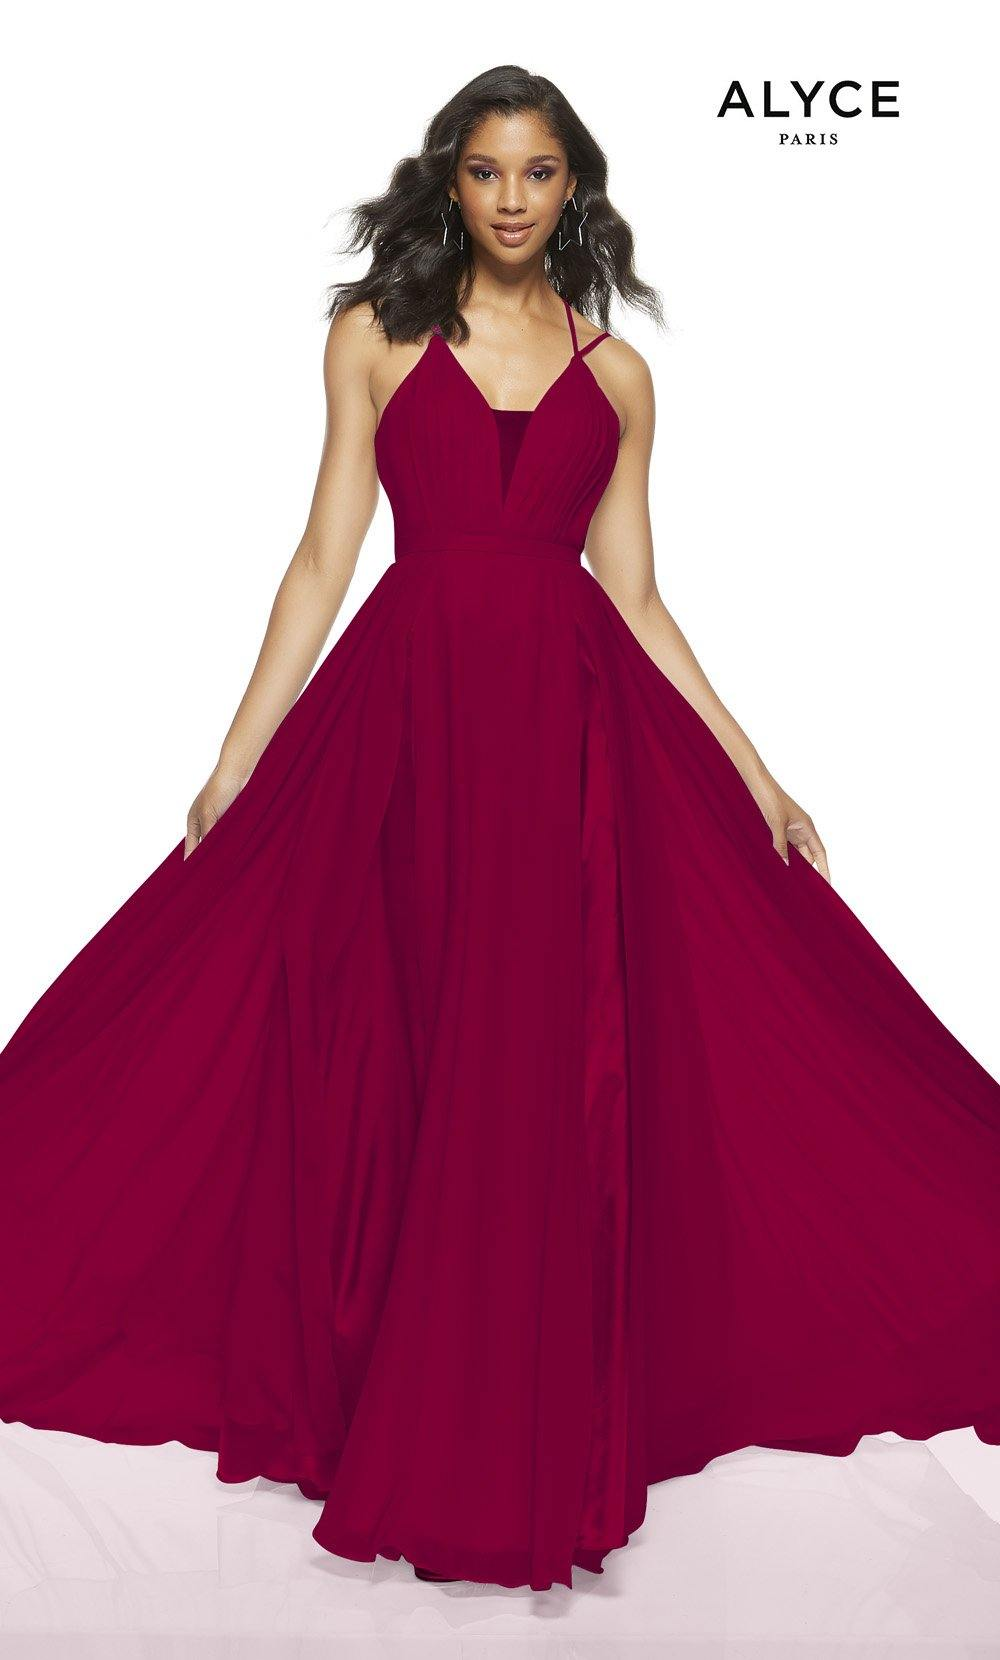 Red flowy wedding guest dress with a plunging neckline